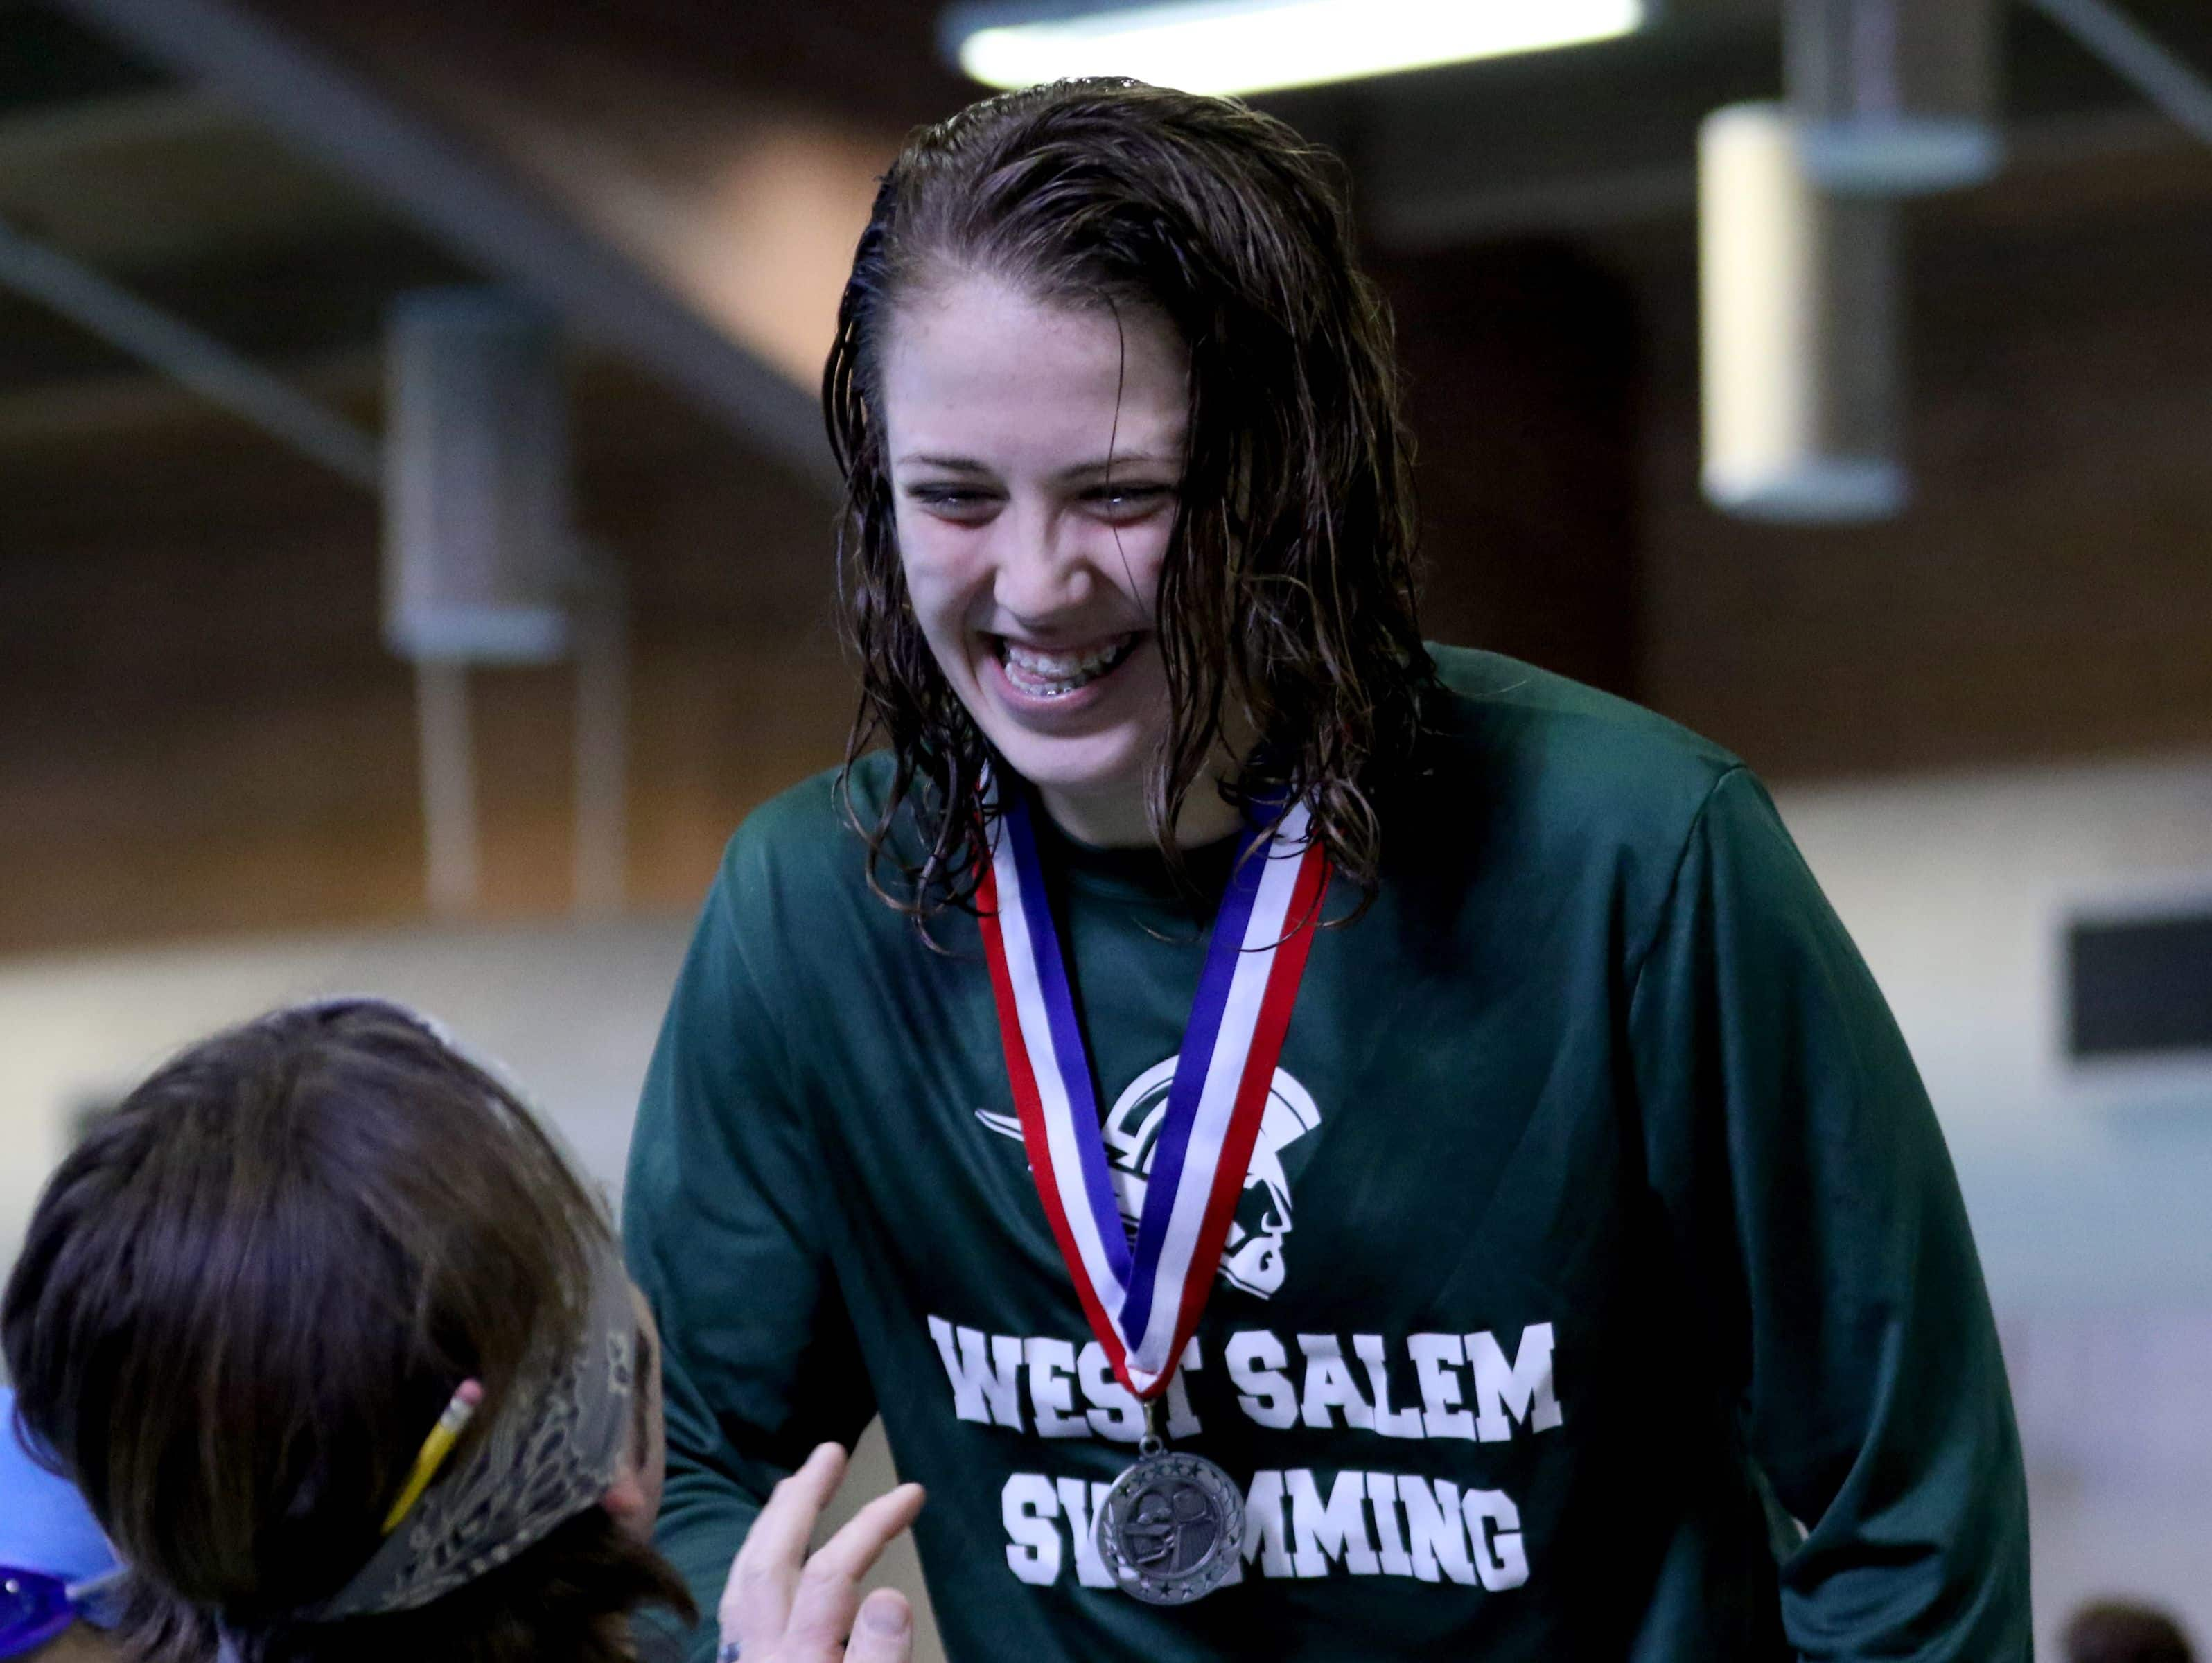 West Salem's Hannah Bodkin accepts her silver medal for the 200 yard individual medley in the during the Greater Valley Conference swimming championships at the McMinnville Aquatic Center on Saturday, Feb. 11, 2017.